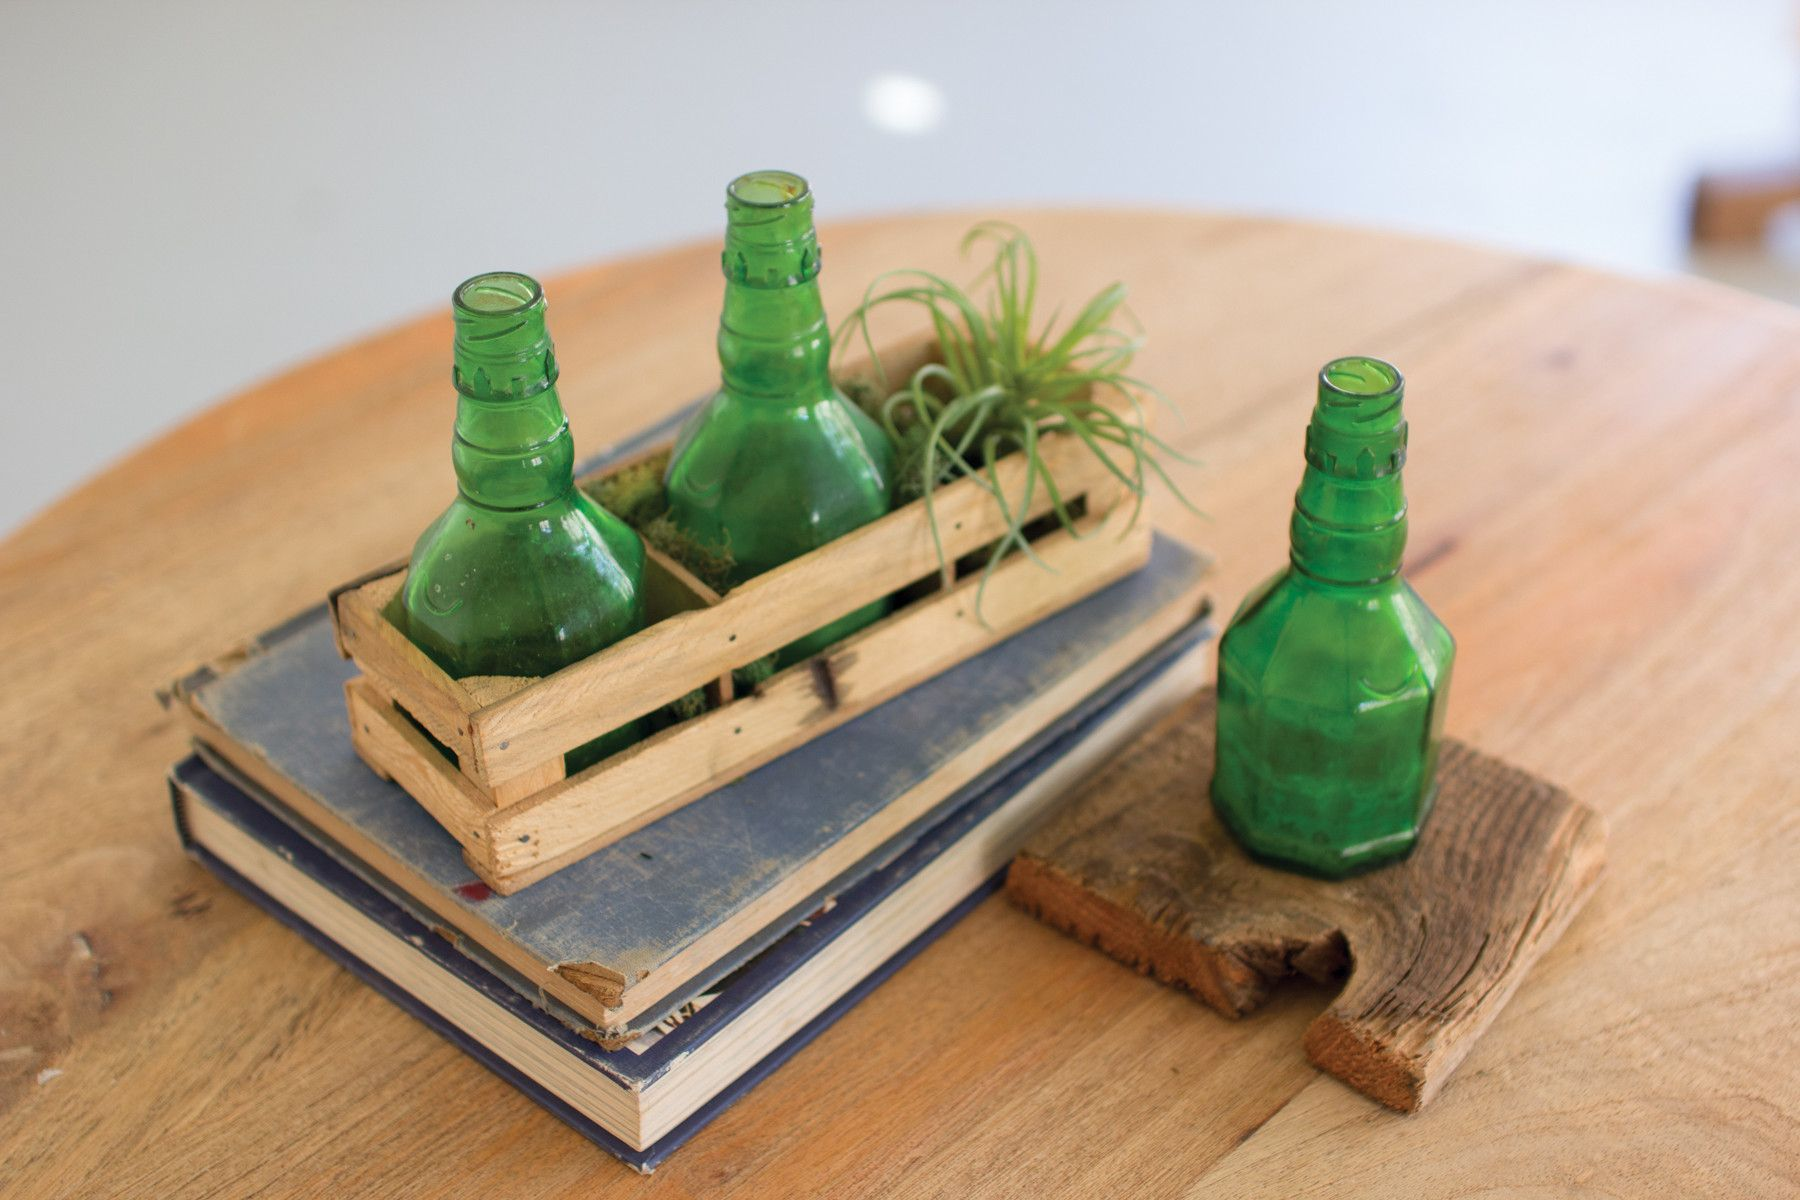 Set of 3 Reclaimed Green Glass Bottles with Wooden Crate